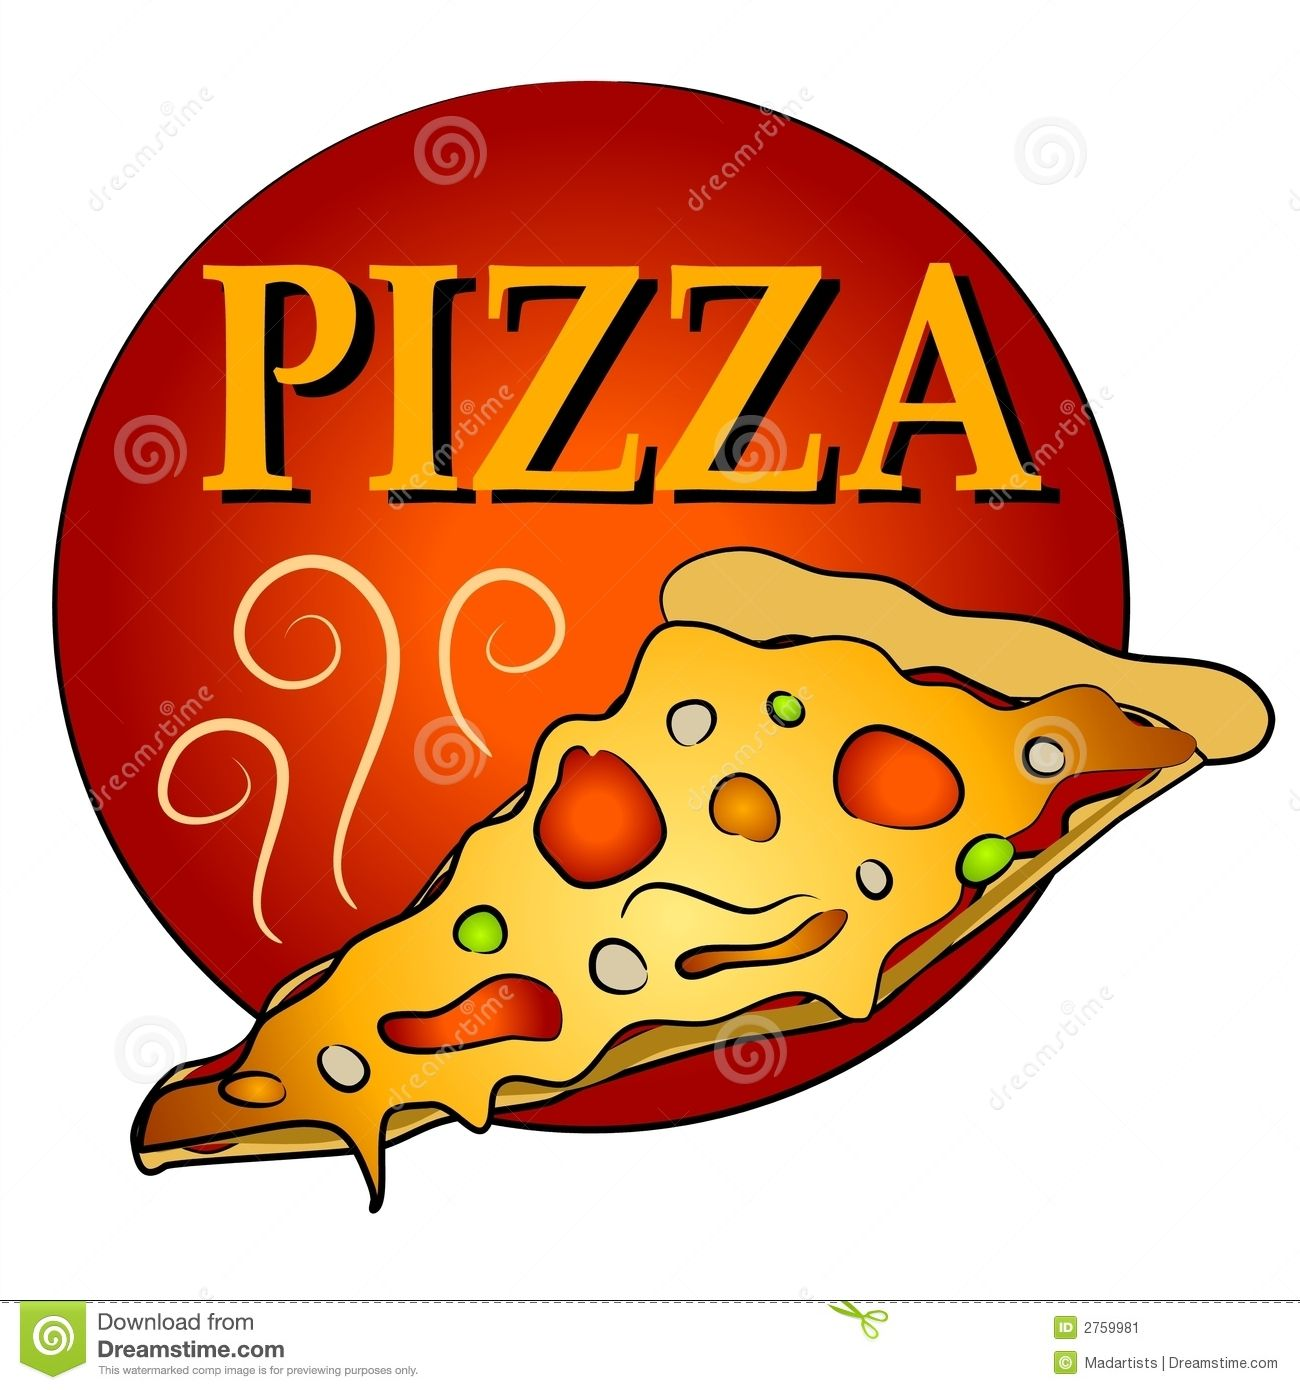 pizza clipart HD Wallpapers Download Free pizza clipart Tumblr.